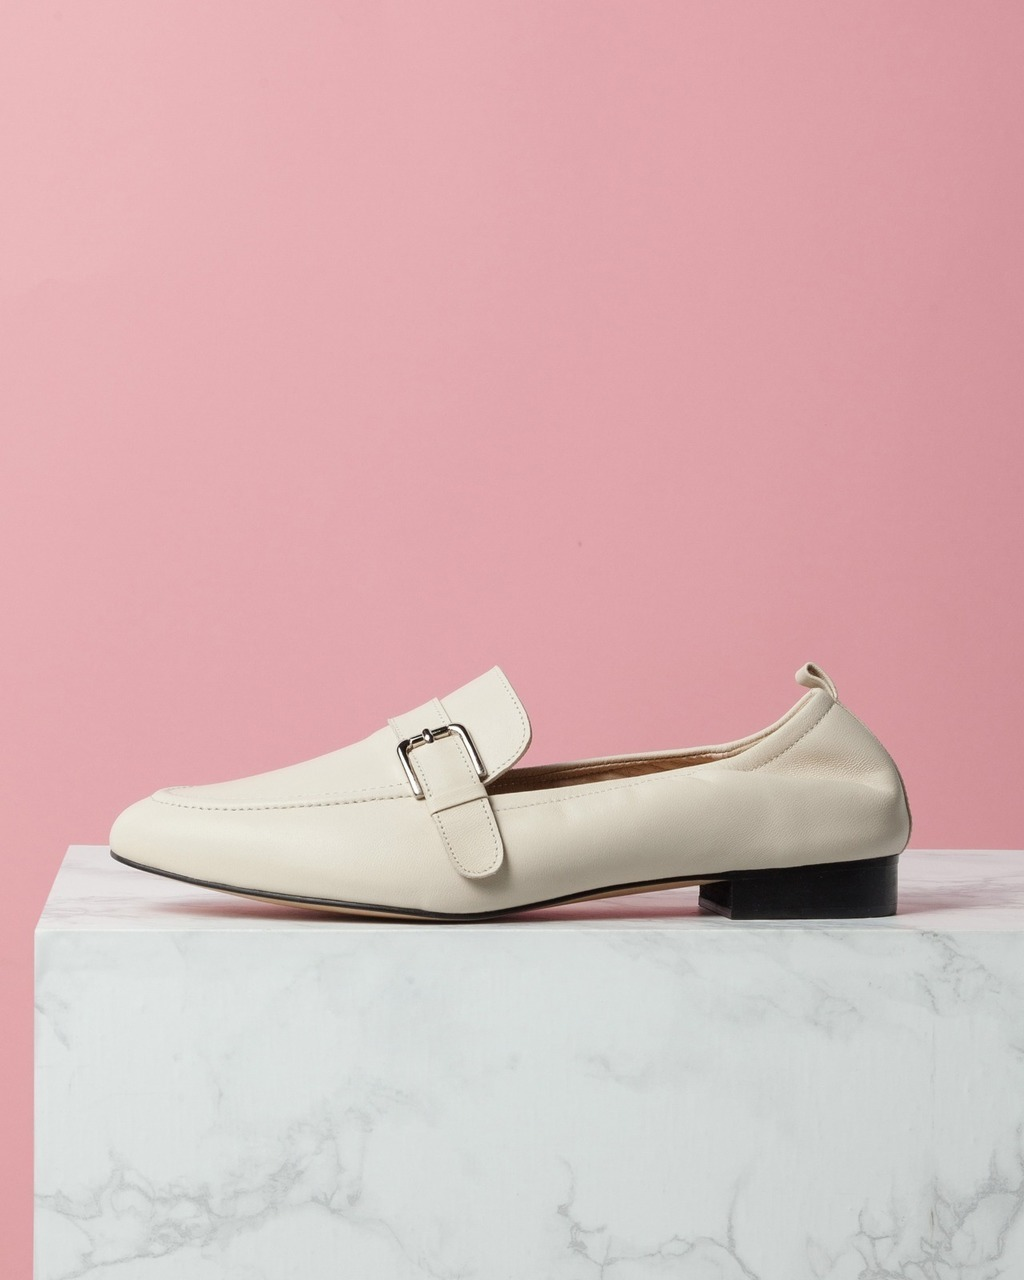 DORATORE Enel Cream - Women's Shoes : Republic of Korea